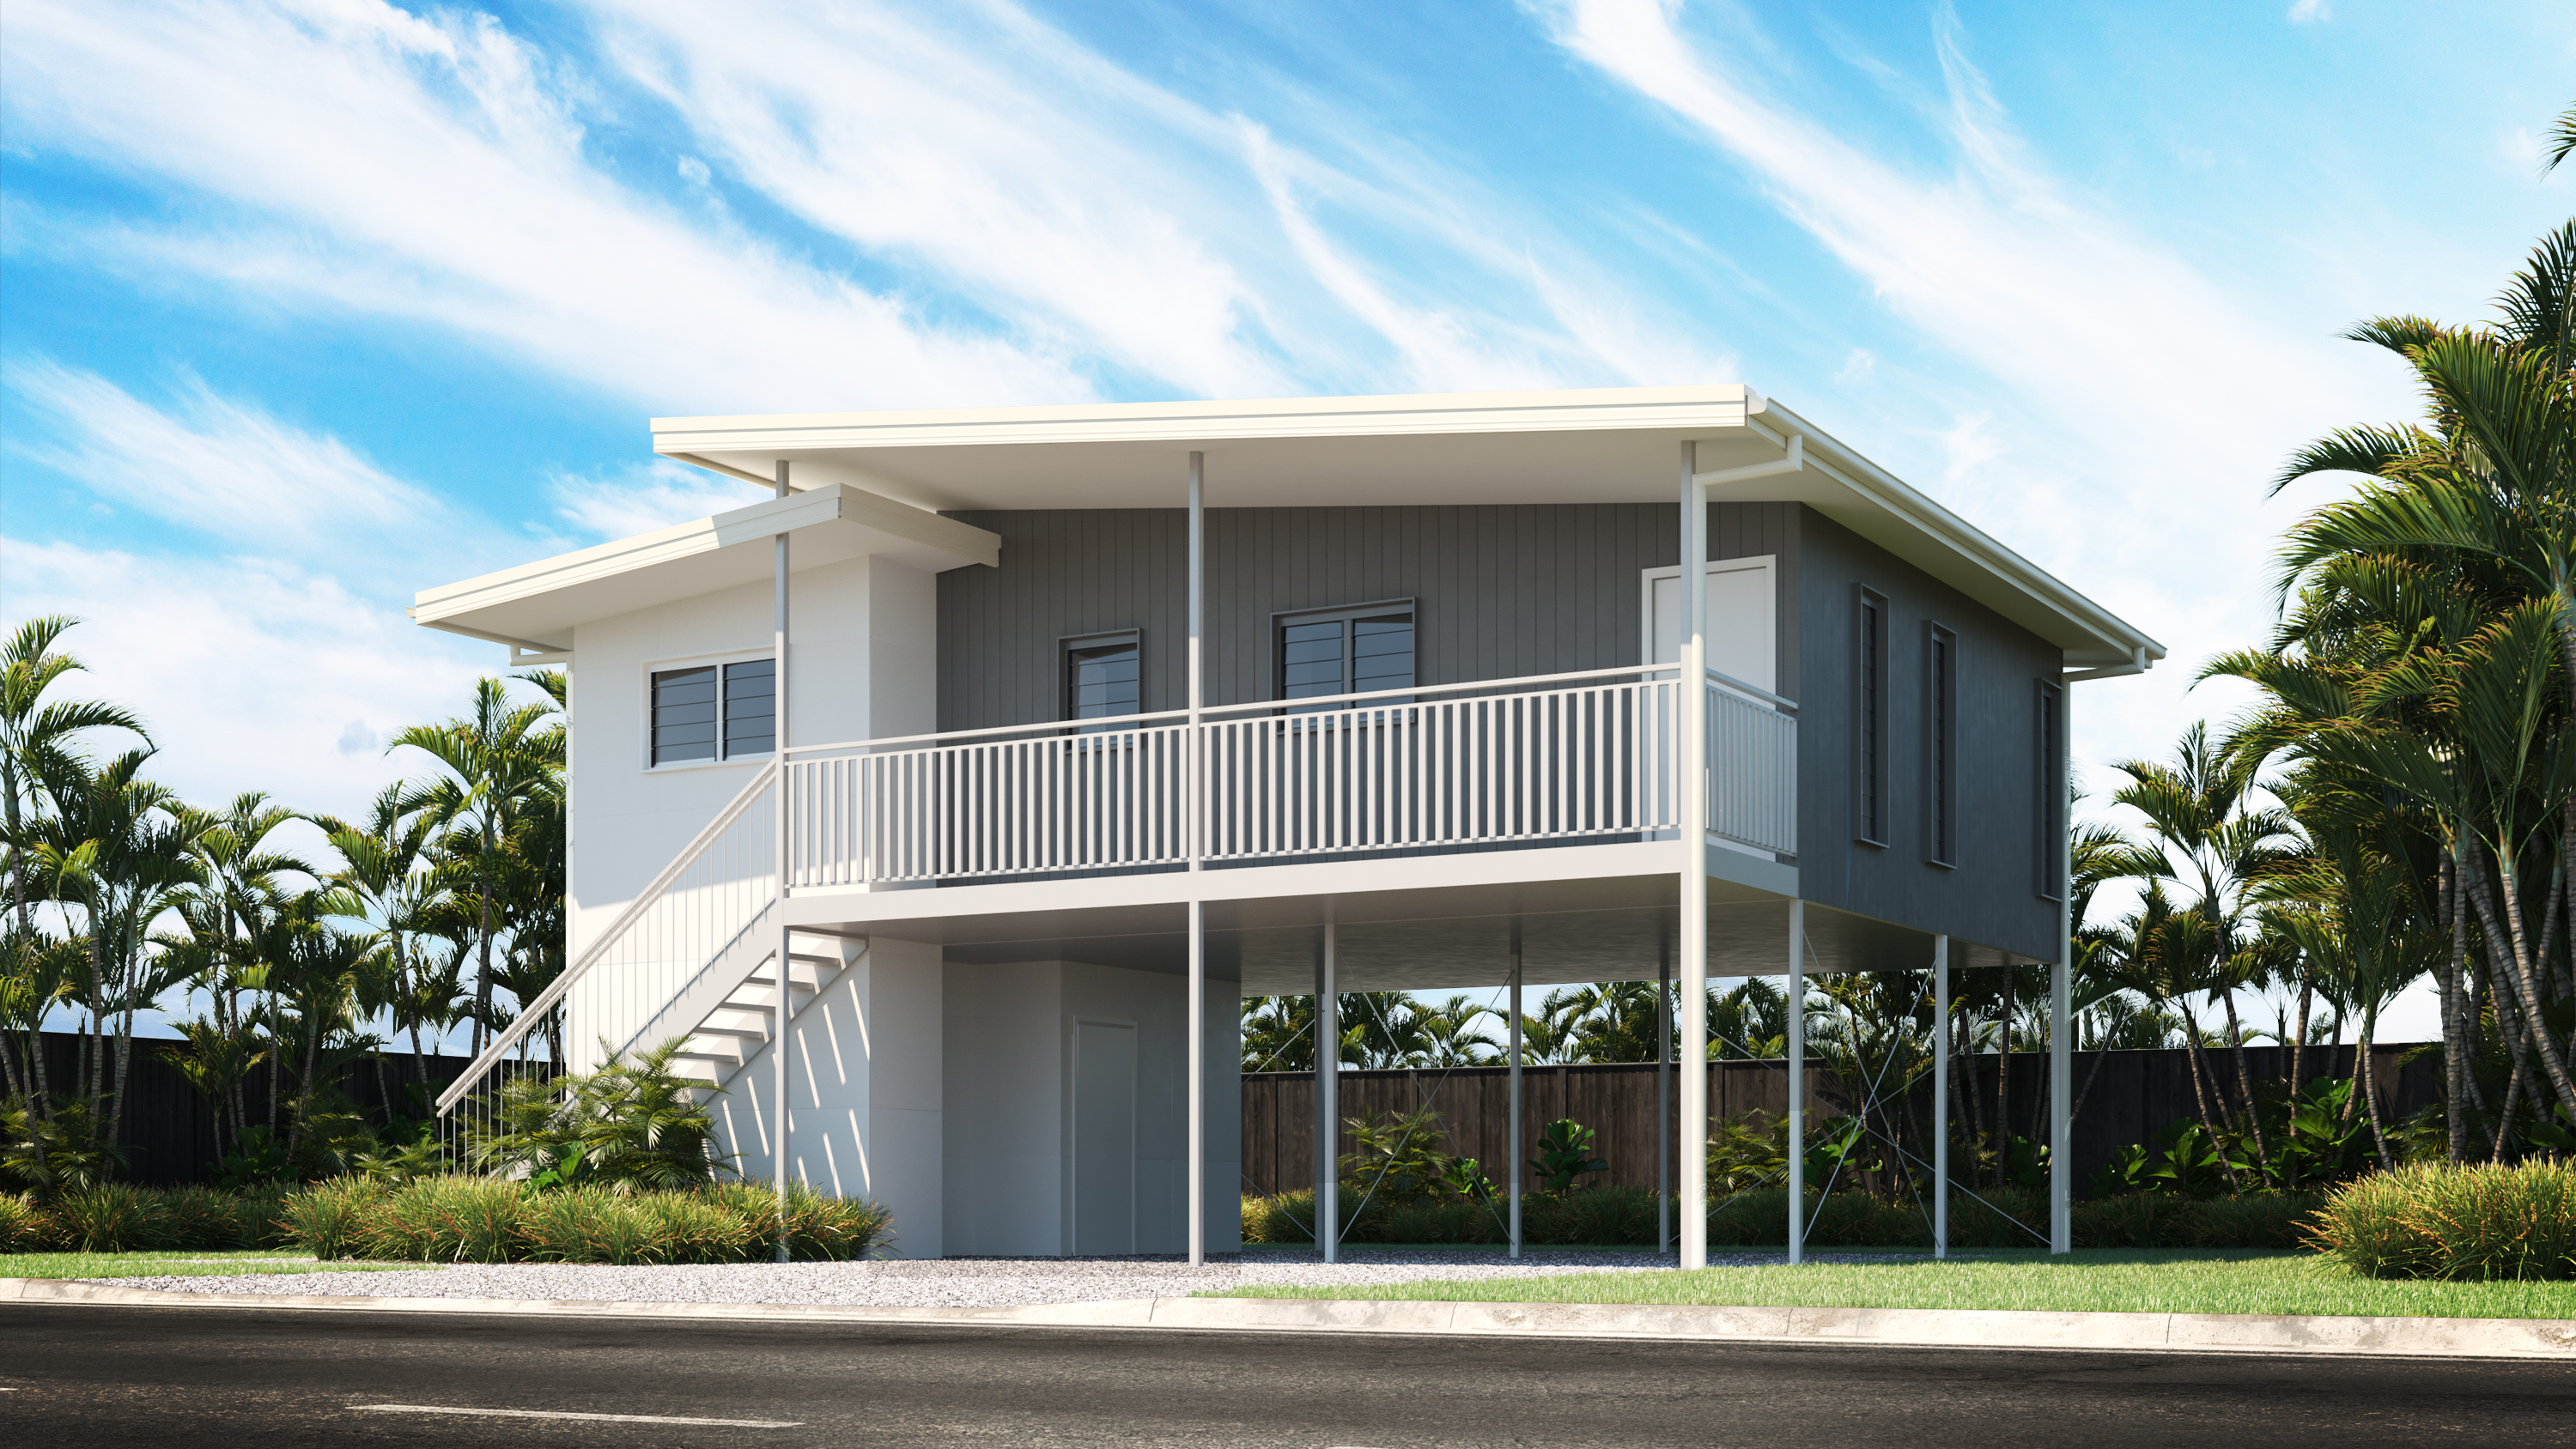 very excited, Coming soon….New Housing Development!